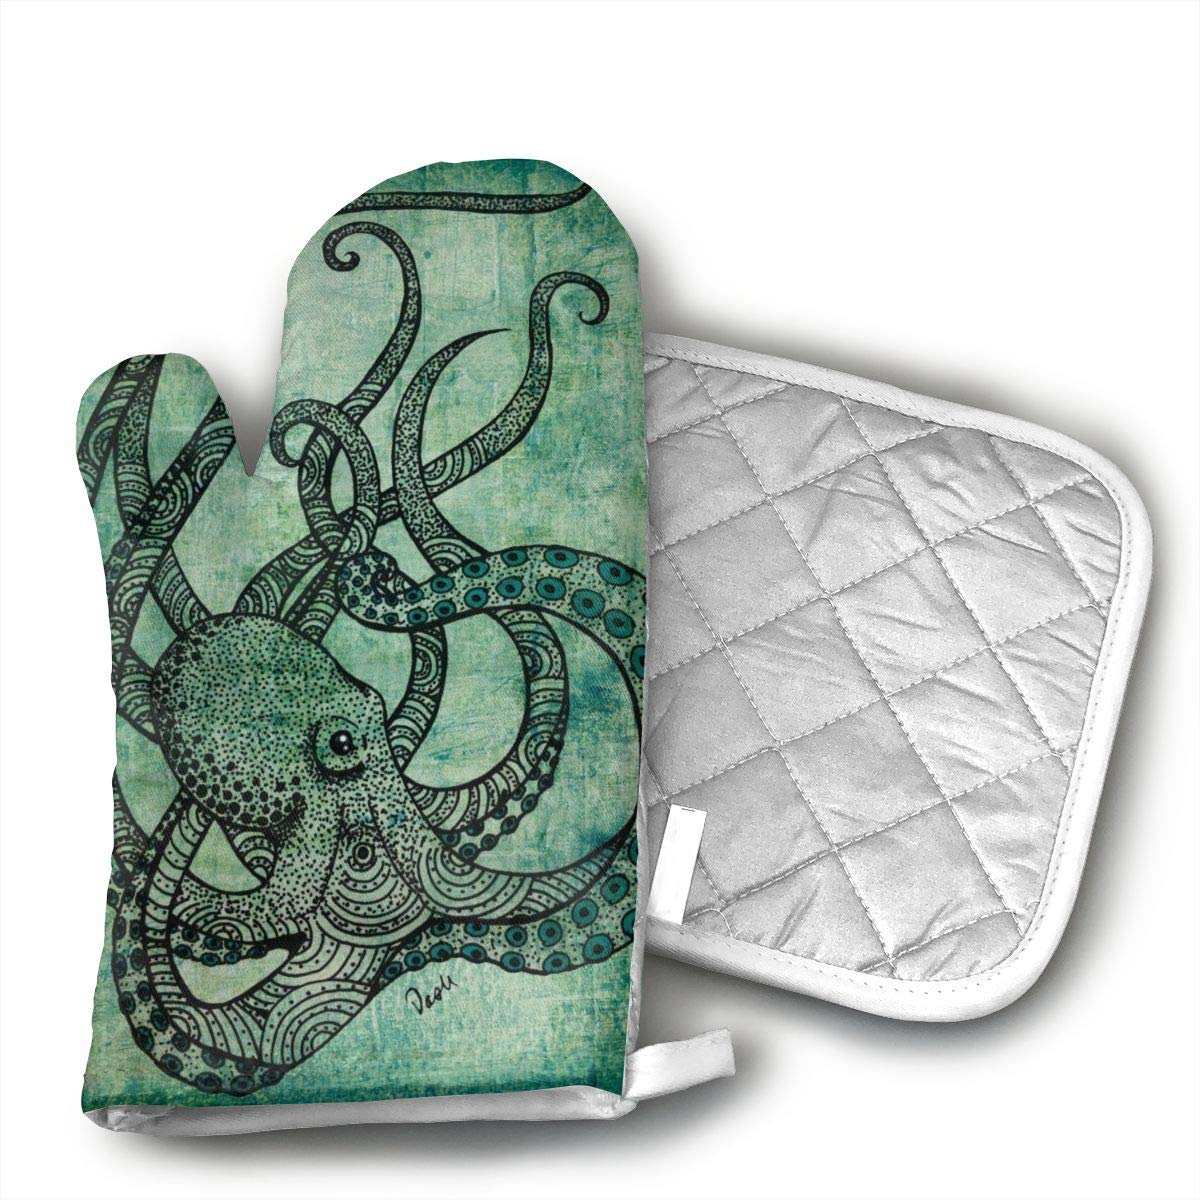 Teuwia Fashion Green Octopus Oven Mitts and Pot Holders Baking Oven Gloves Hot Pads Set Heat Resistant for Finger Hand Wrist Protection